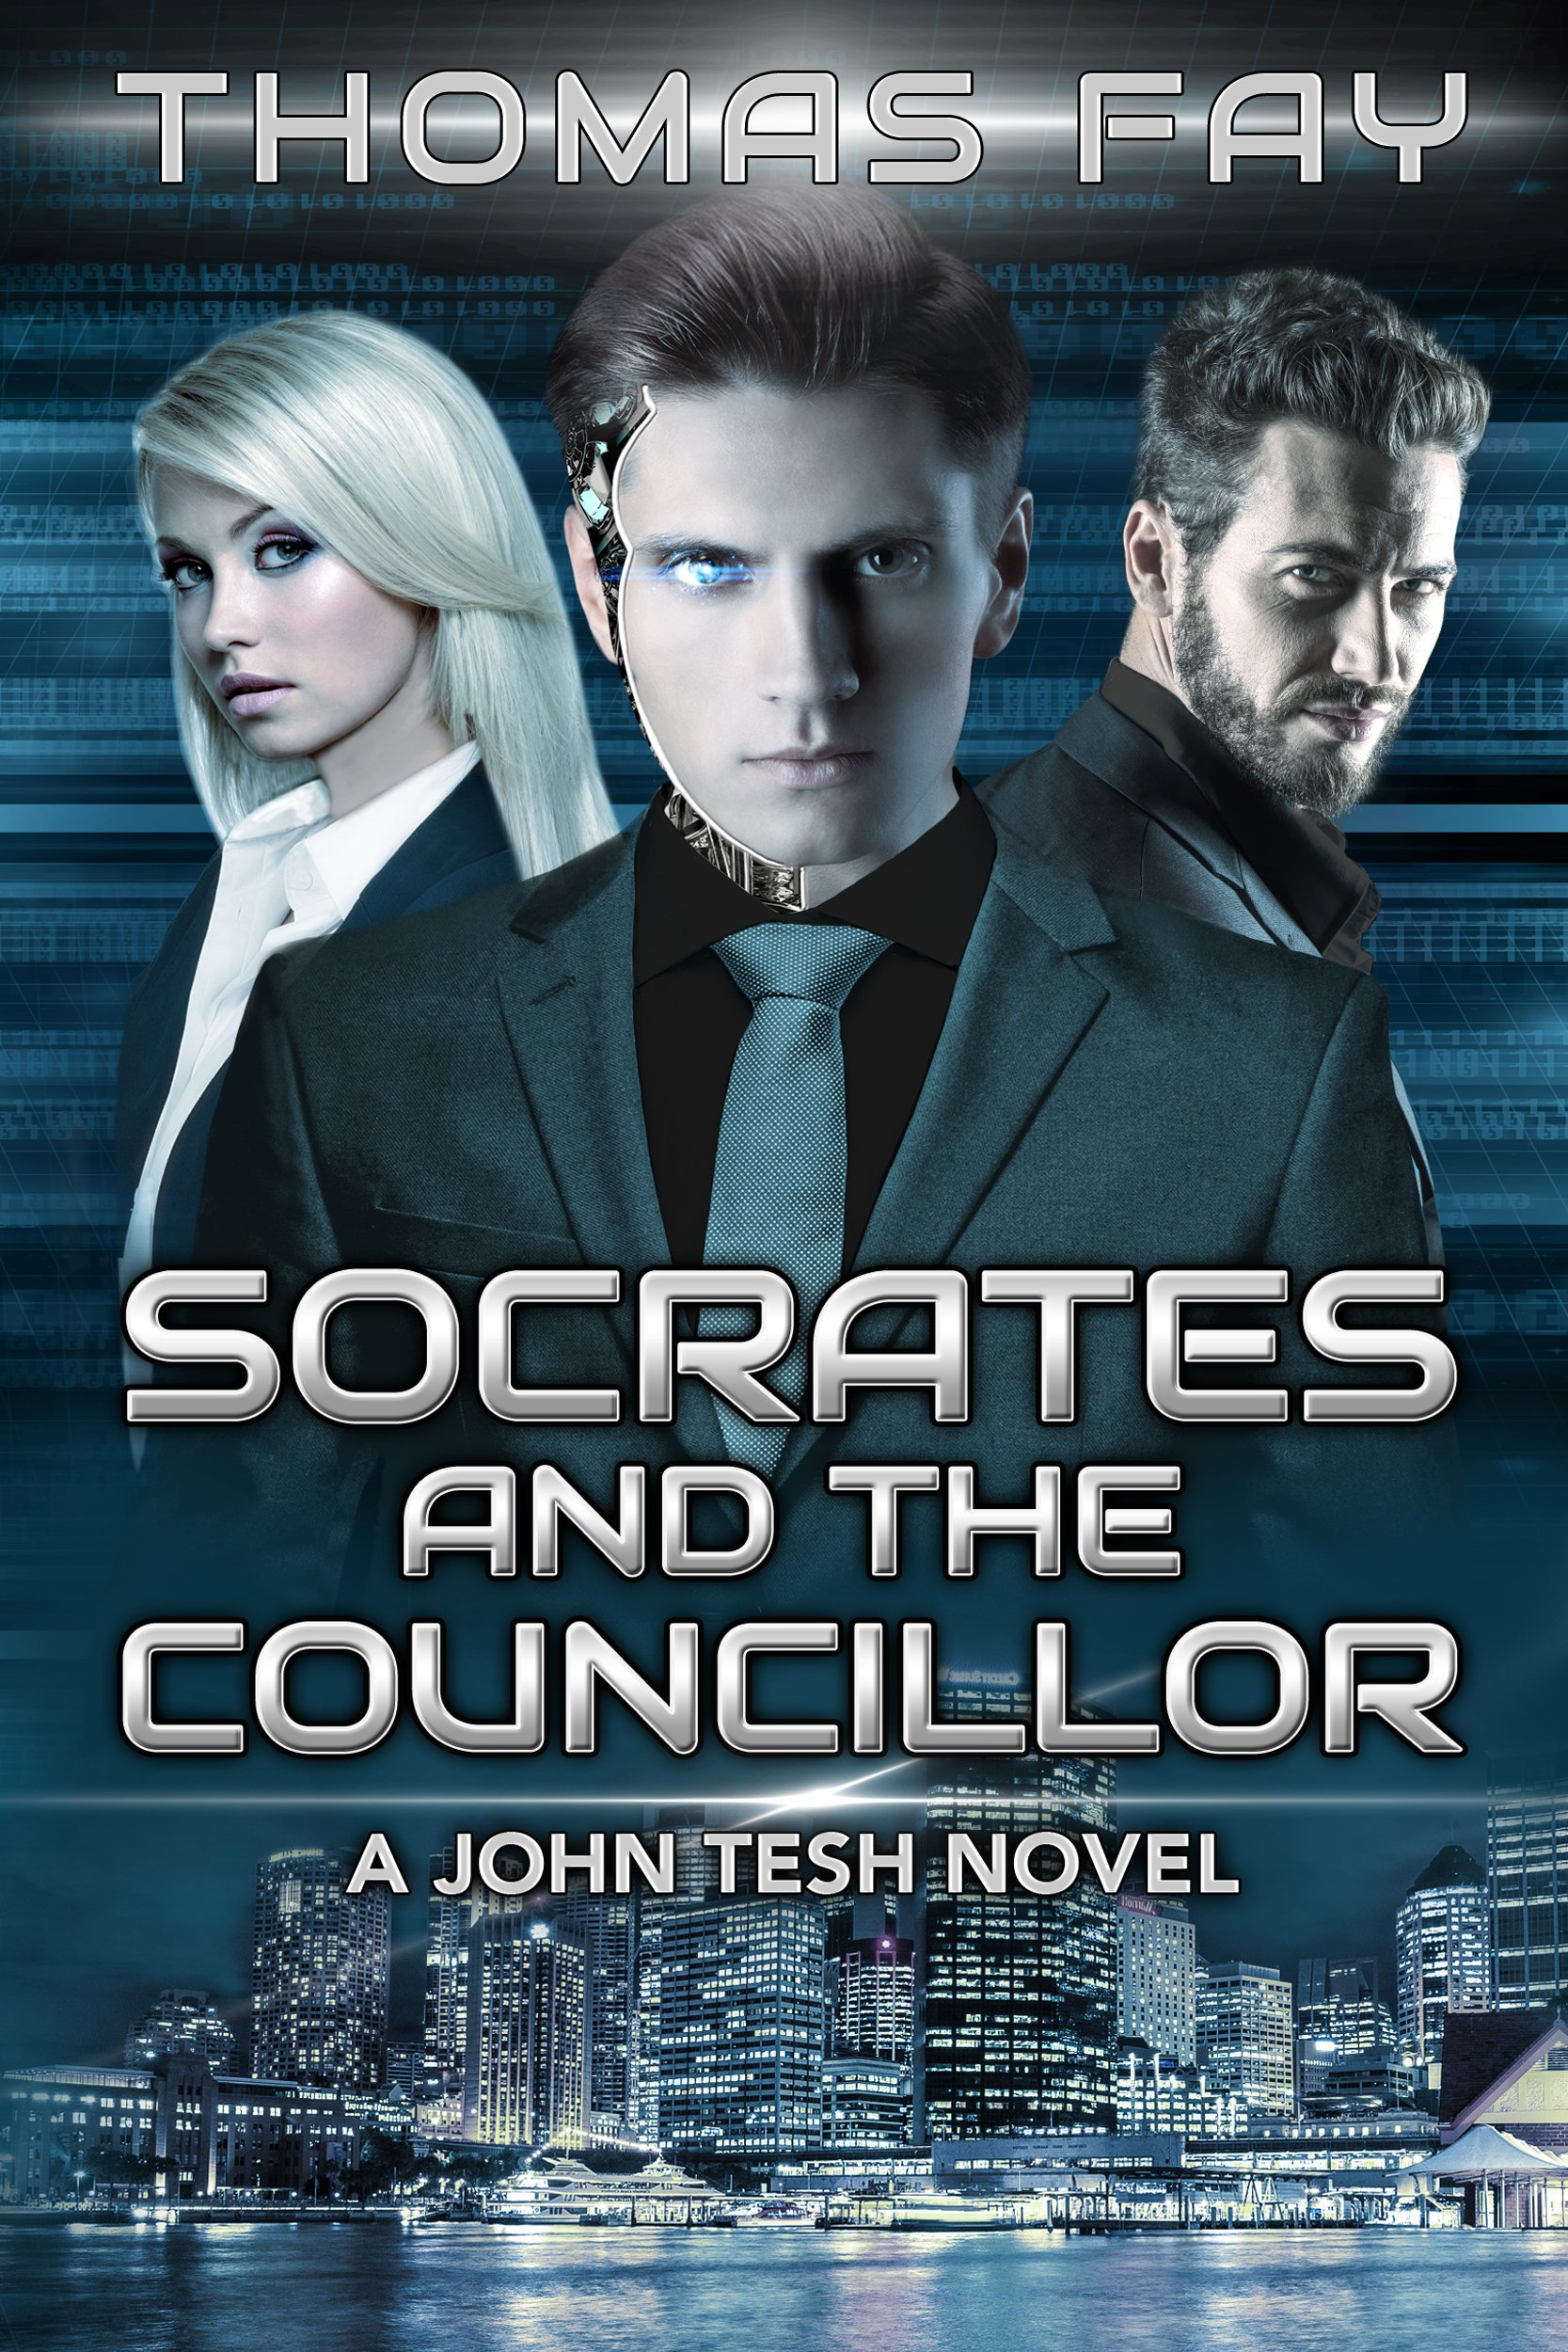 Socrates and the Councillor: A John Tesh Novel (Science Fiction Detective Trilogy Book 1)